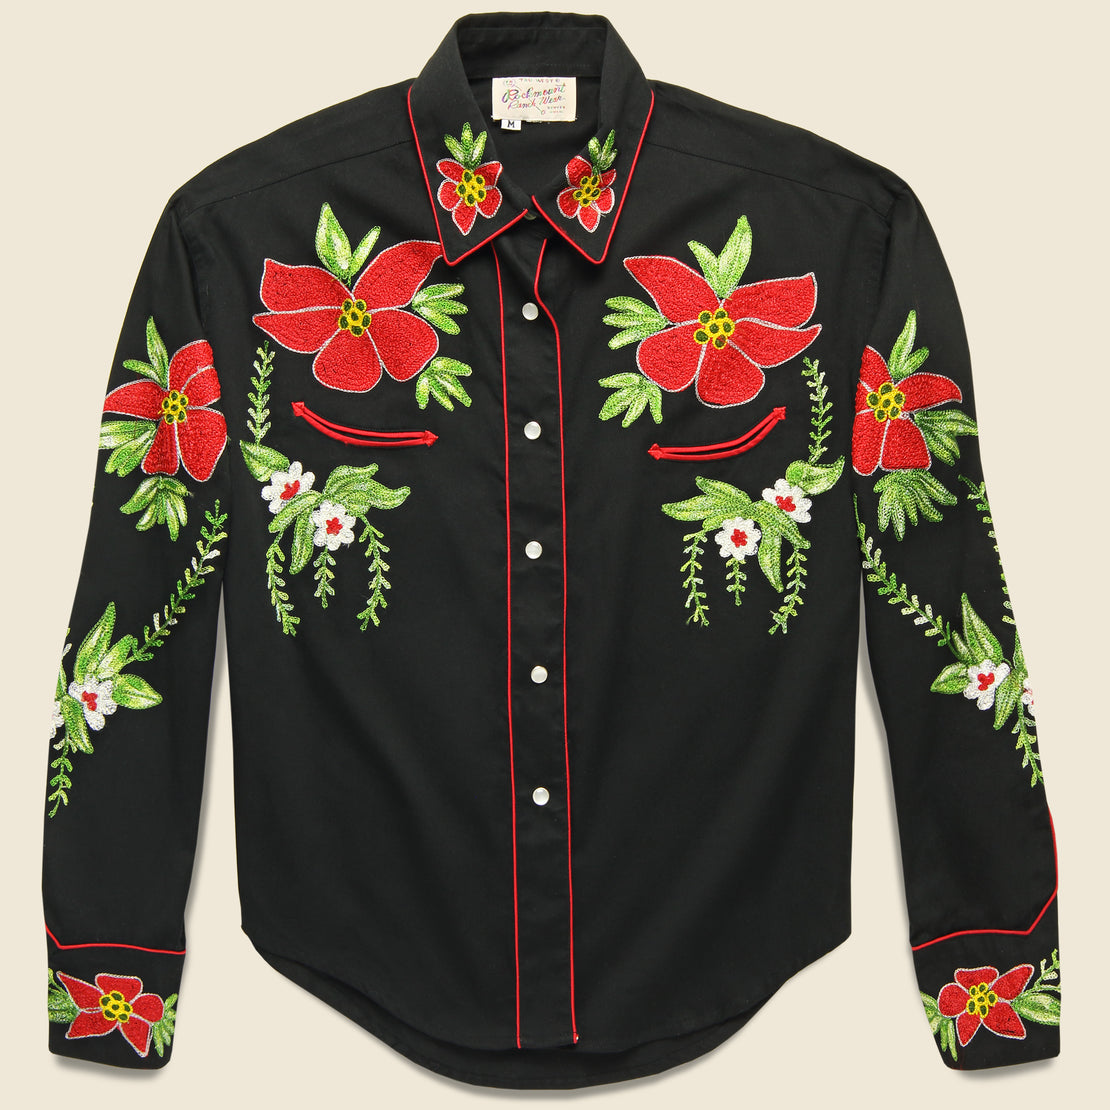 Vintage Rockmount Embroidered Poinsettia Pearl Snap Shirt - Black